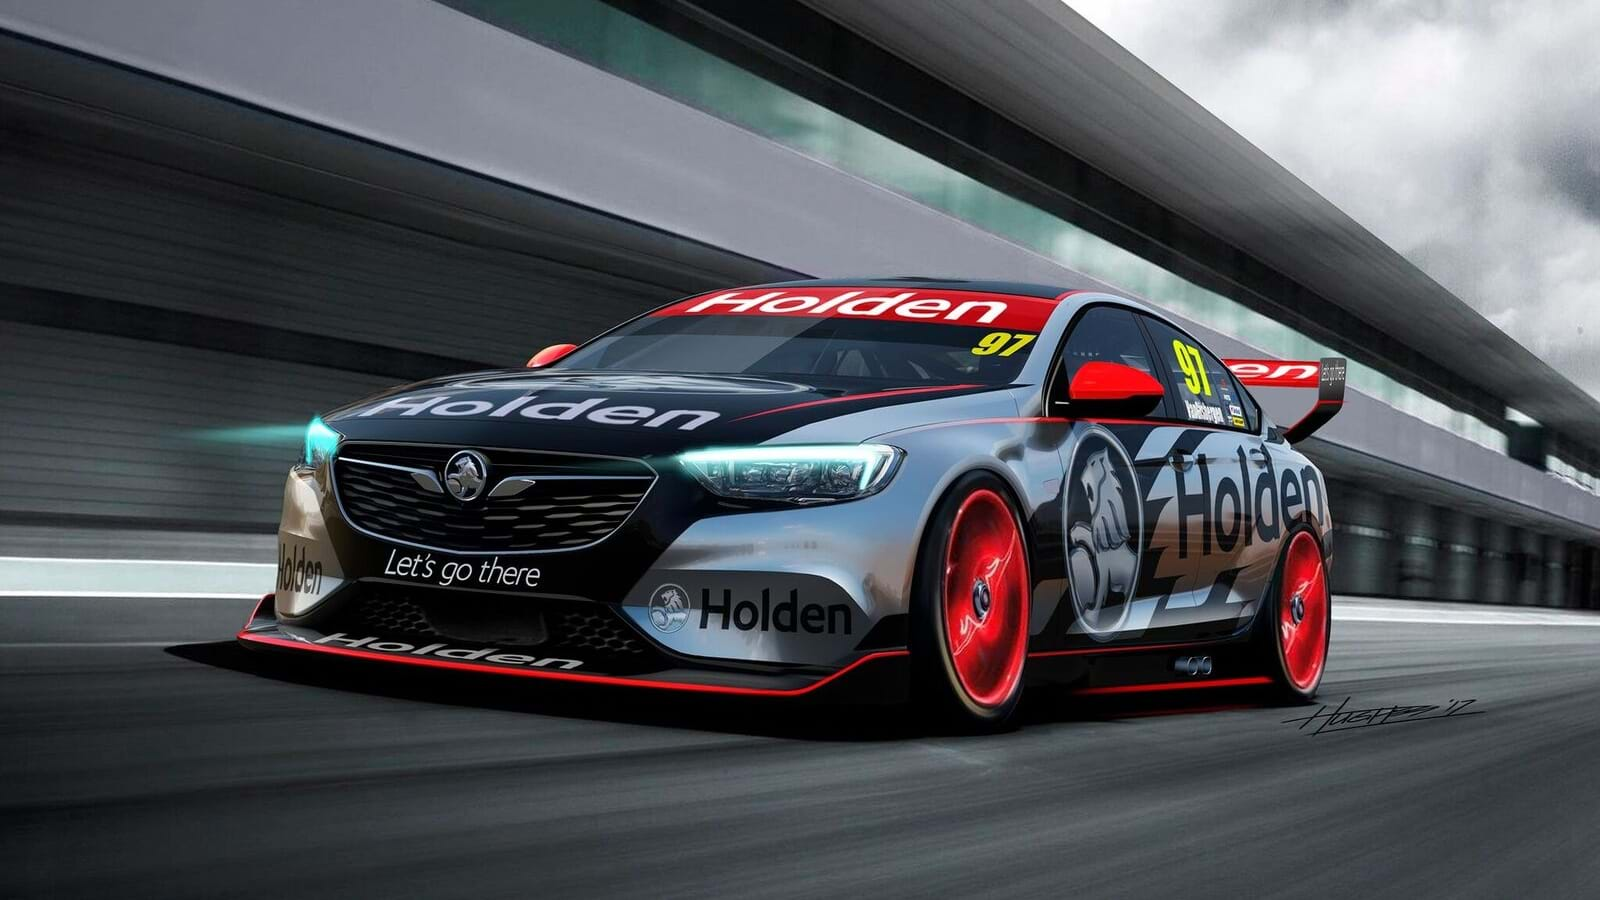 Holden Commodore Supercars Concept revealed